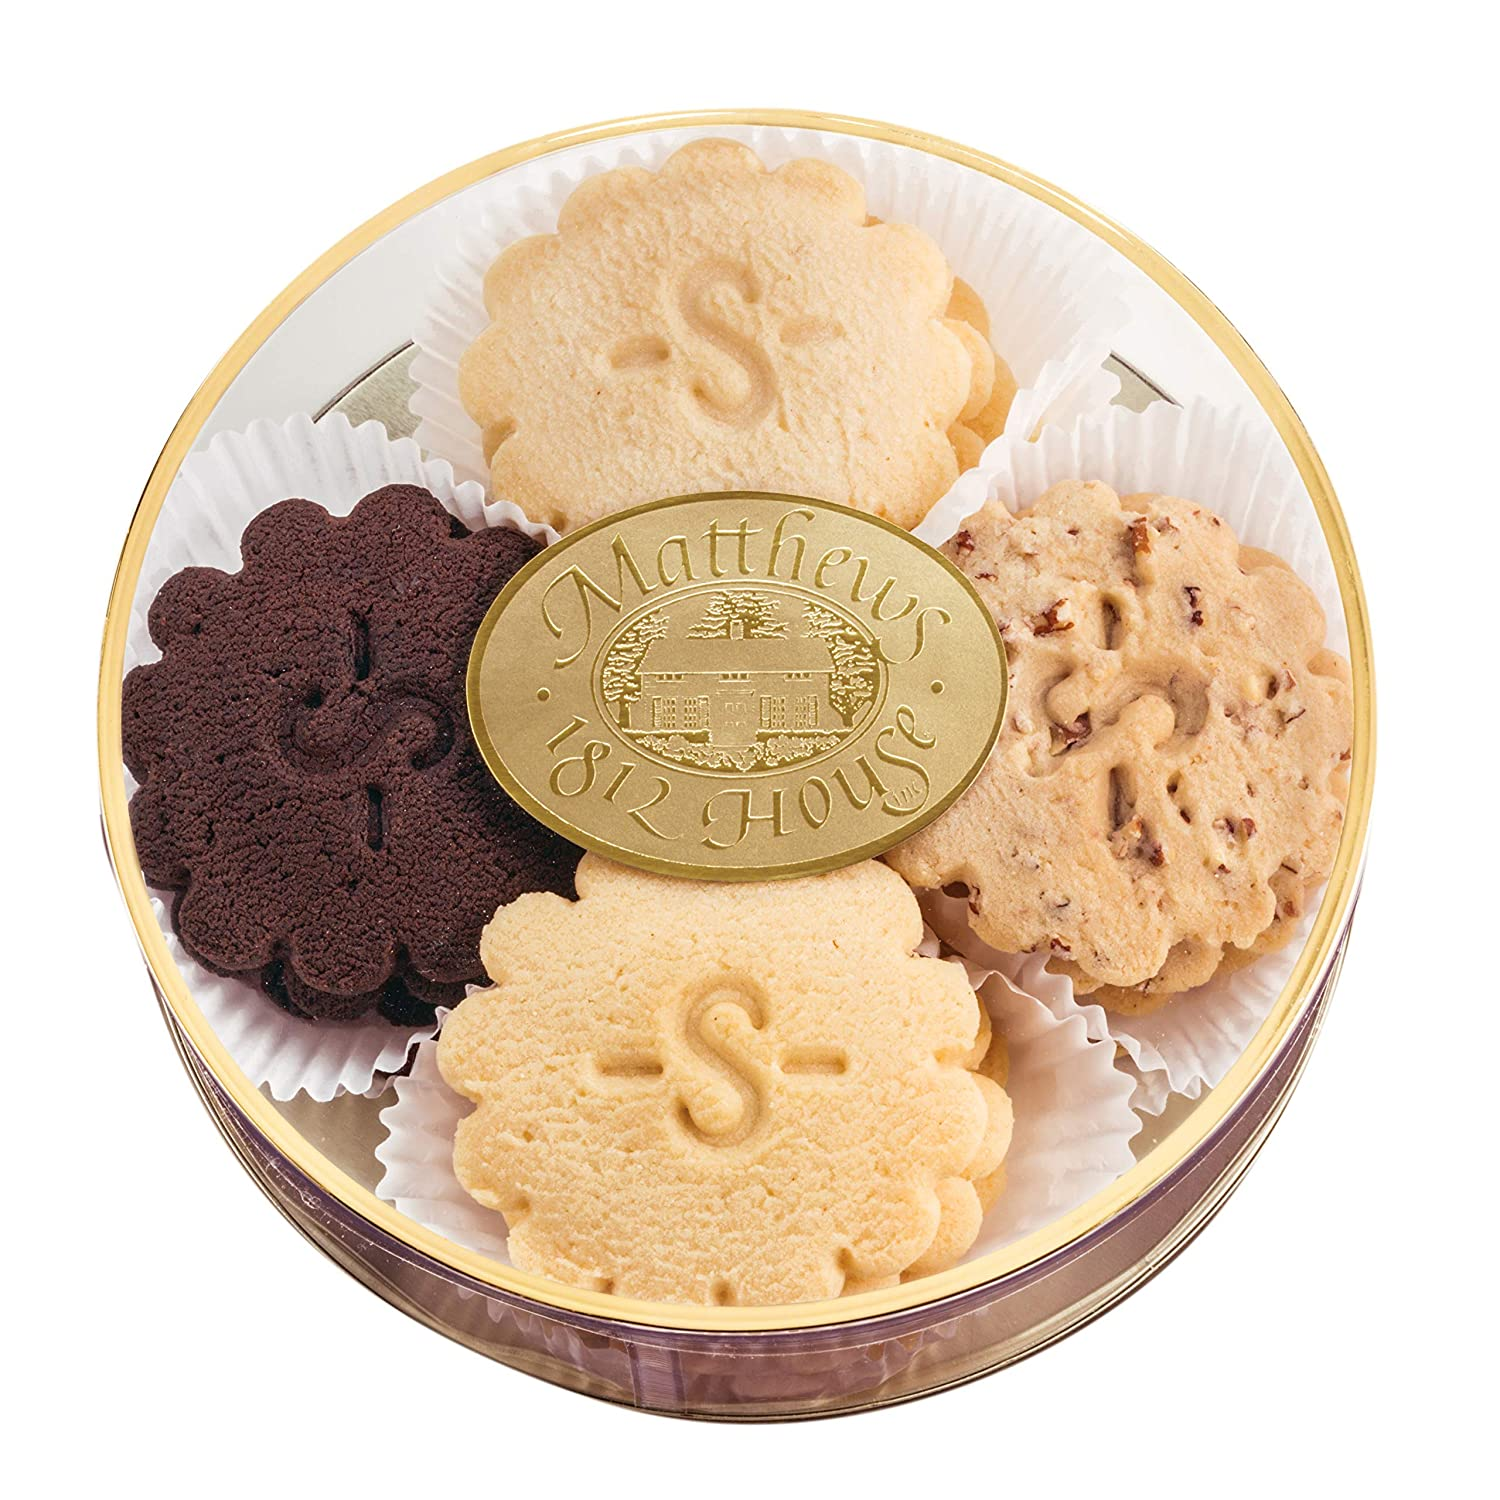 Matthews 1812 House Assorted Gourmet Sugar Free Shortbread Cookie Gift Sampler- Chocolate, Lemon, Pecan and Traditional, Small Batch, Real Butter